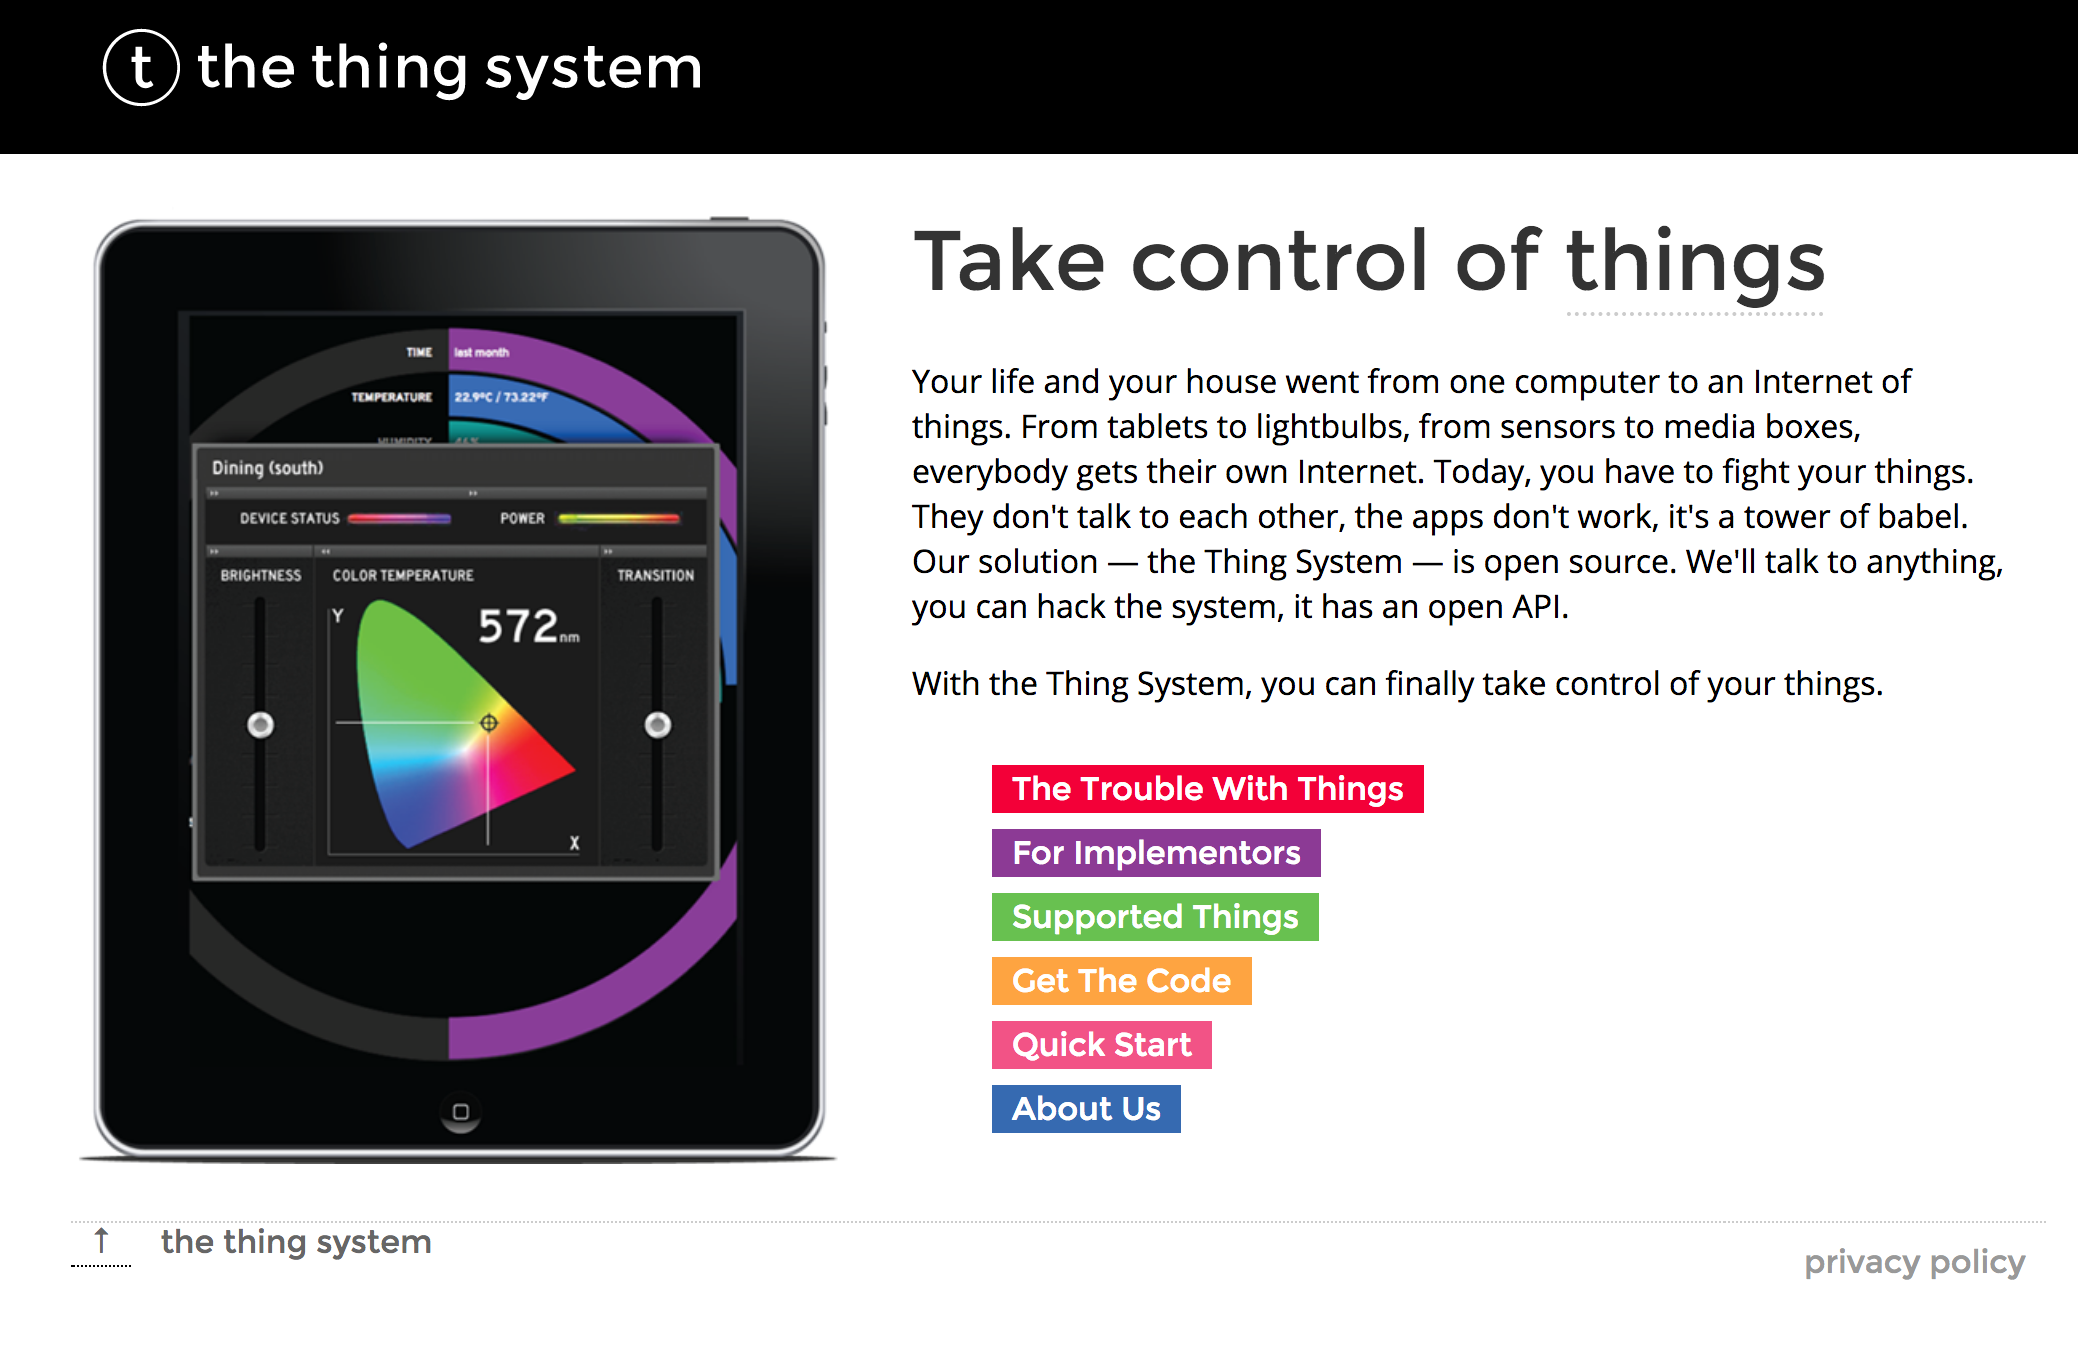 The Thing System